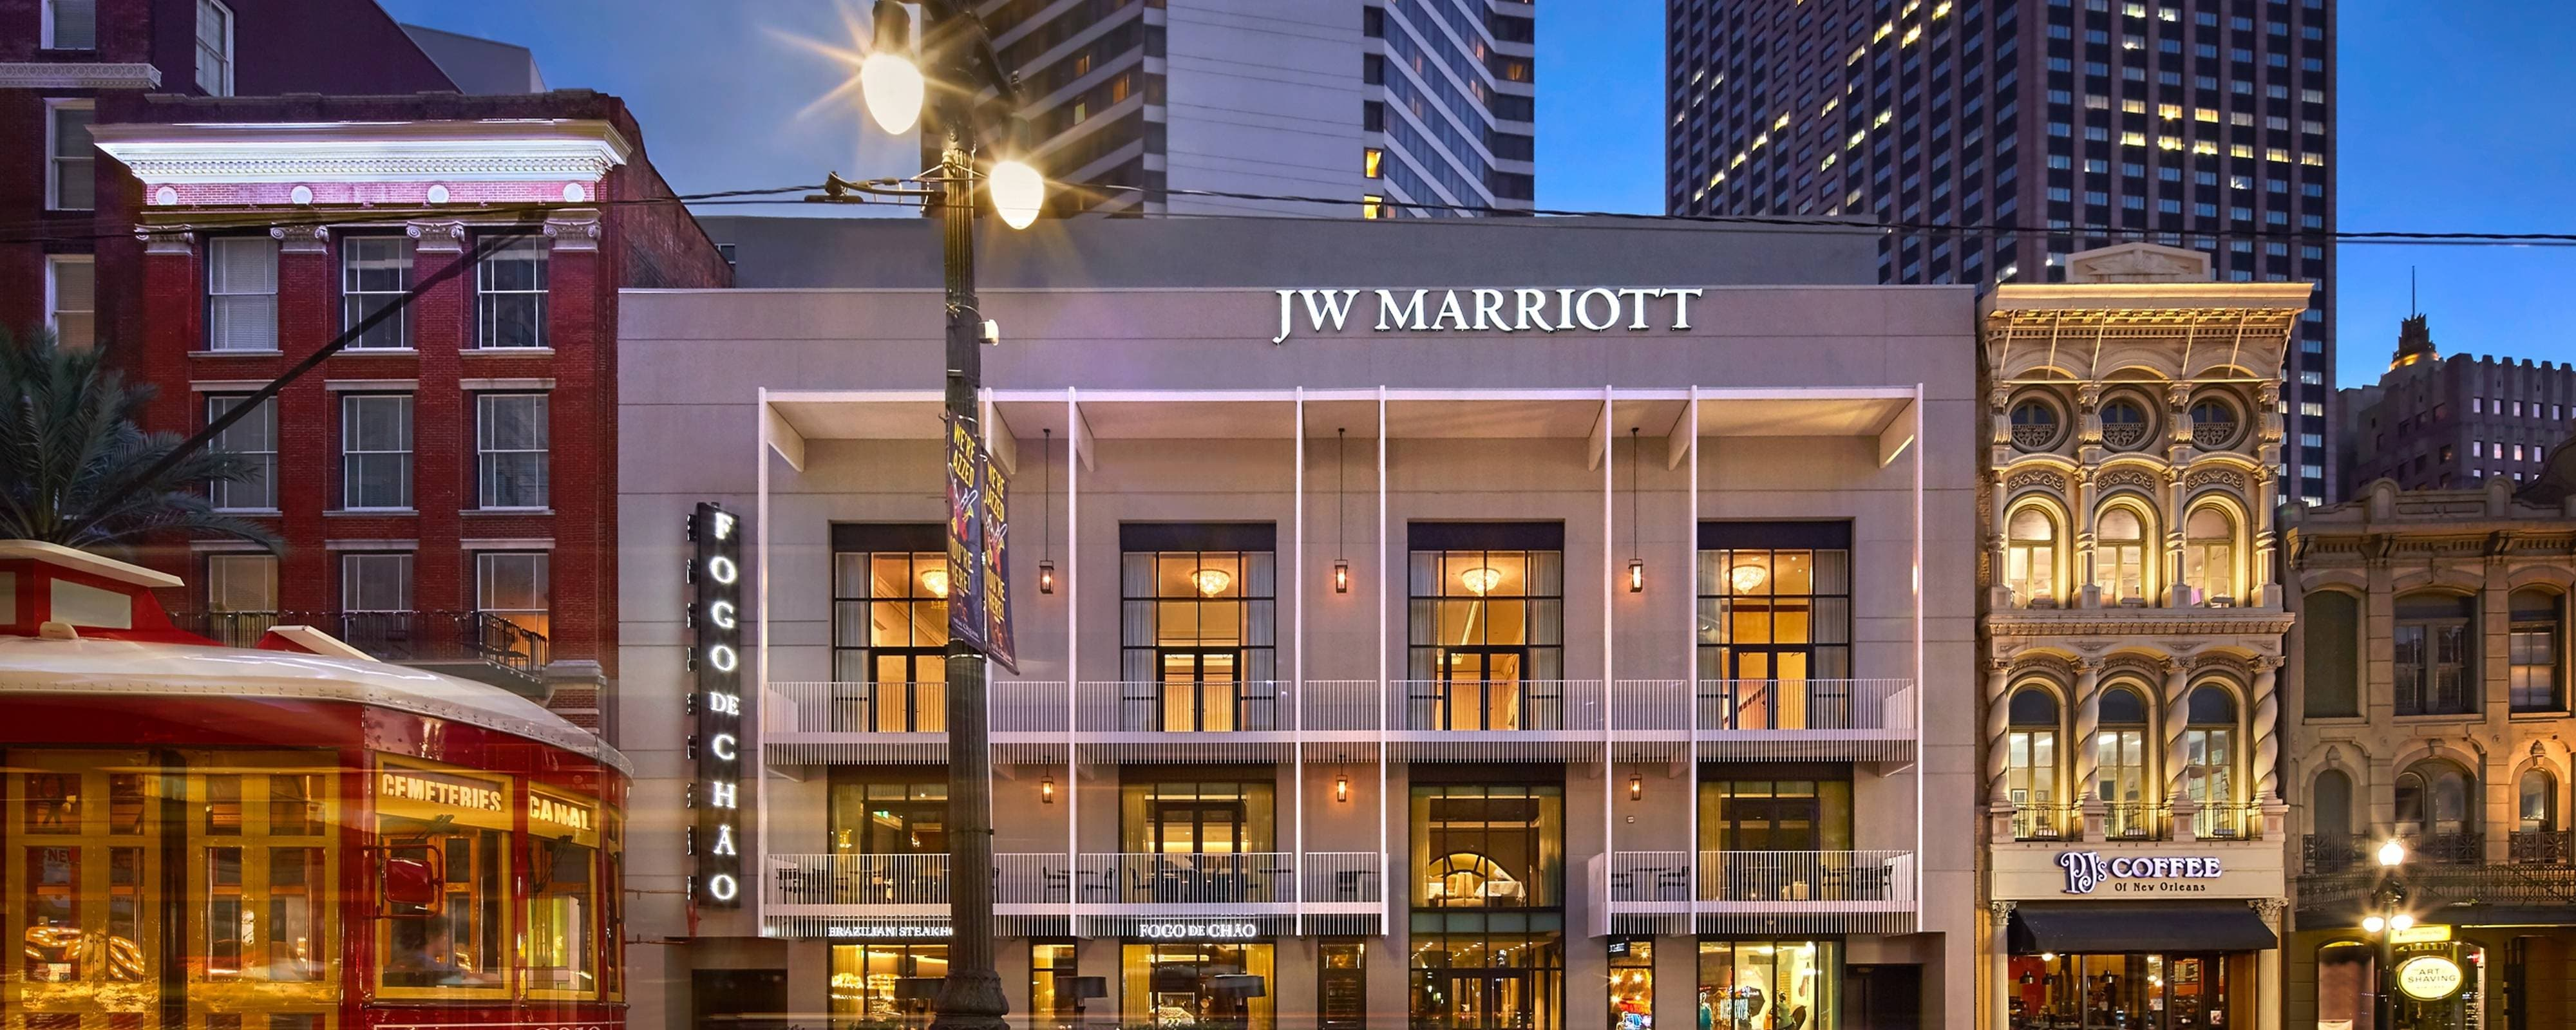 Family Friendly Hotel In New Orleans Jw Marriott New Orleans